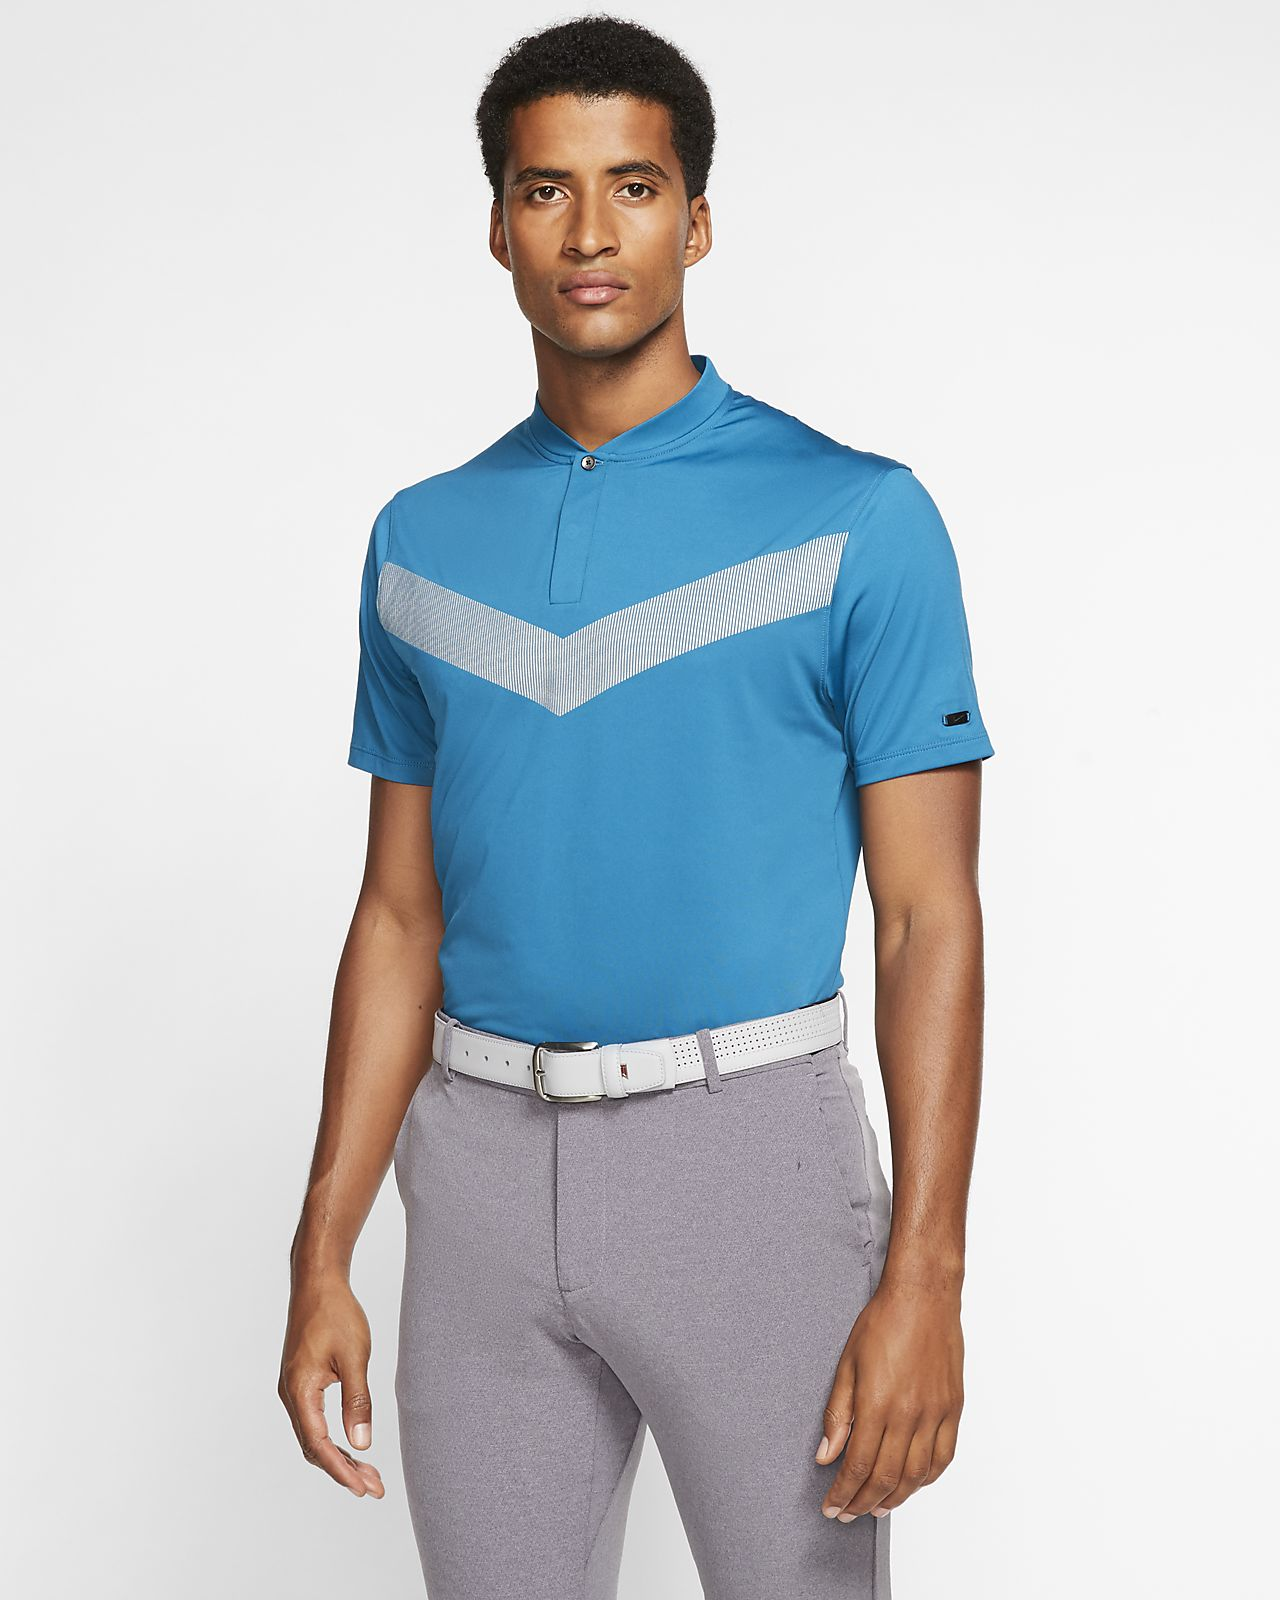 Nike Dri-FIT Tiger Woods Vapor Men's Golf Polo